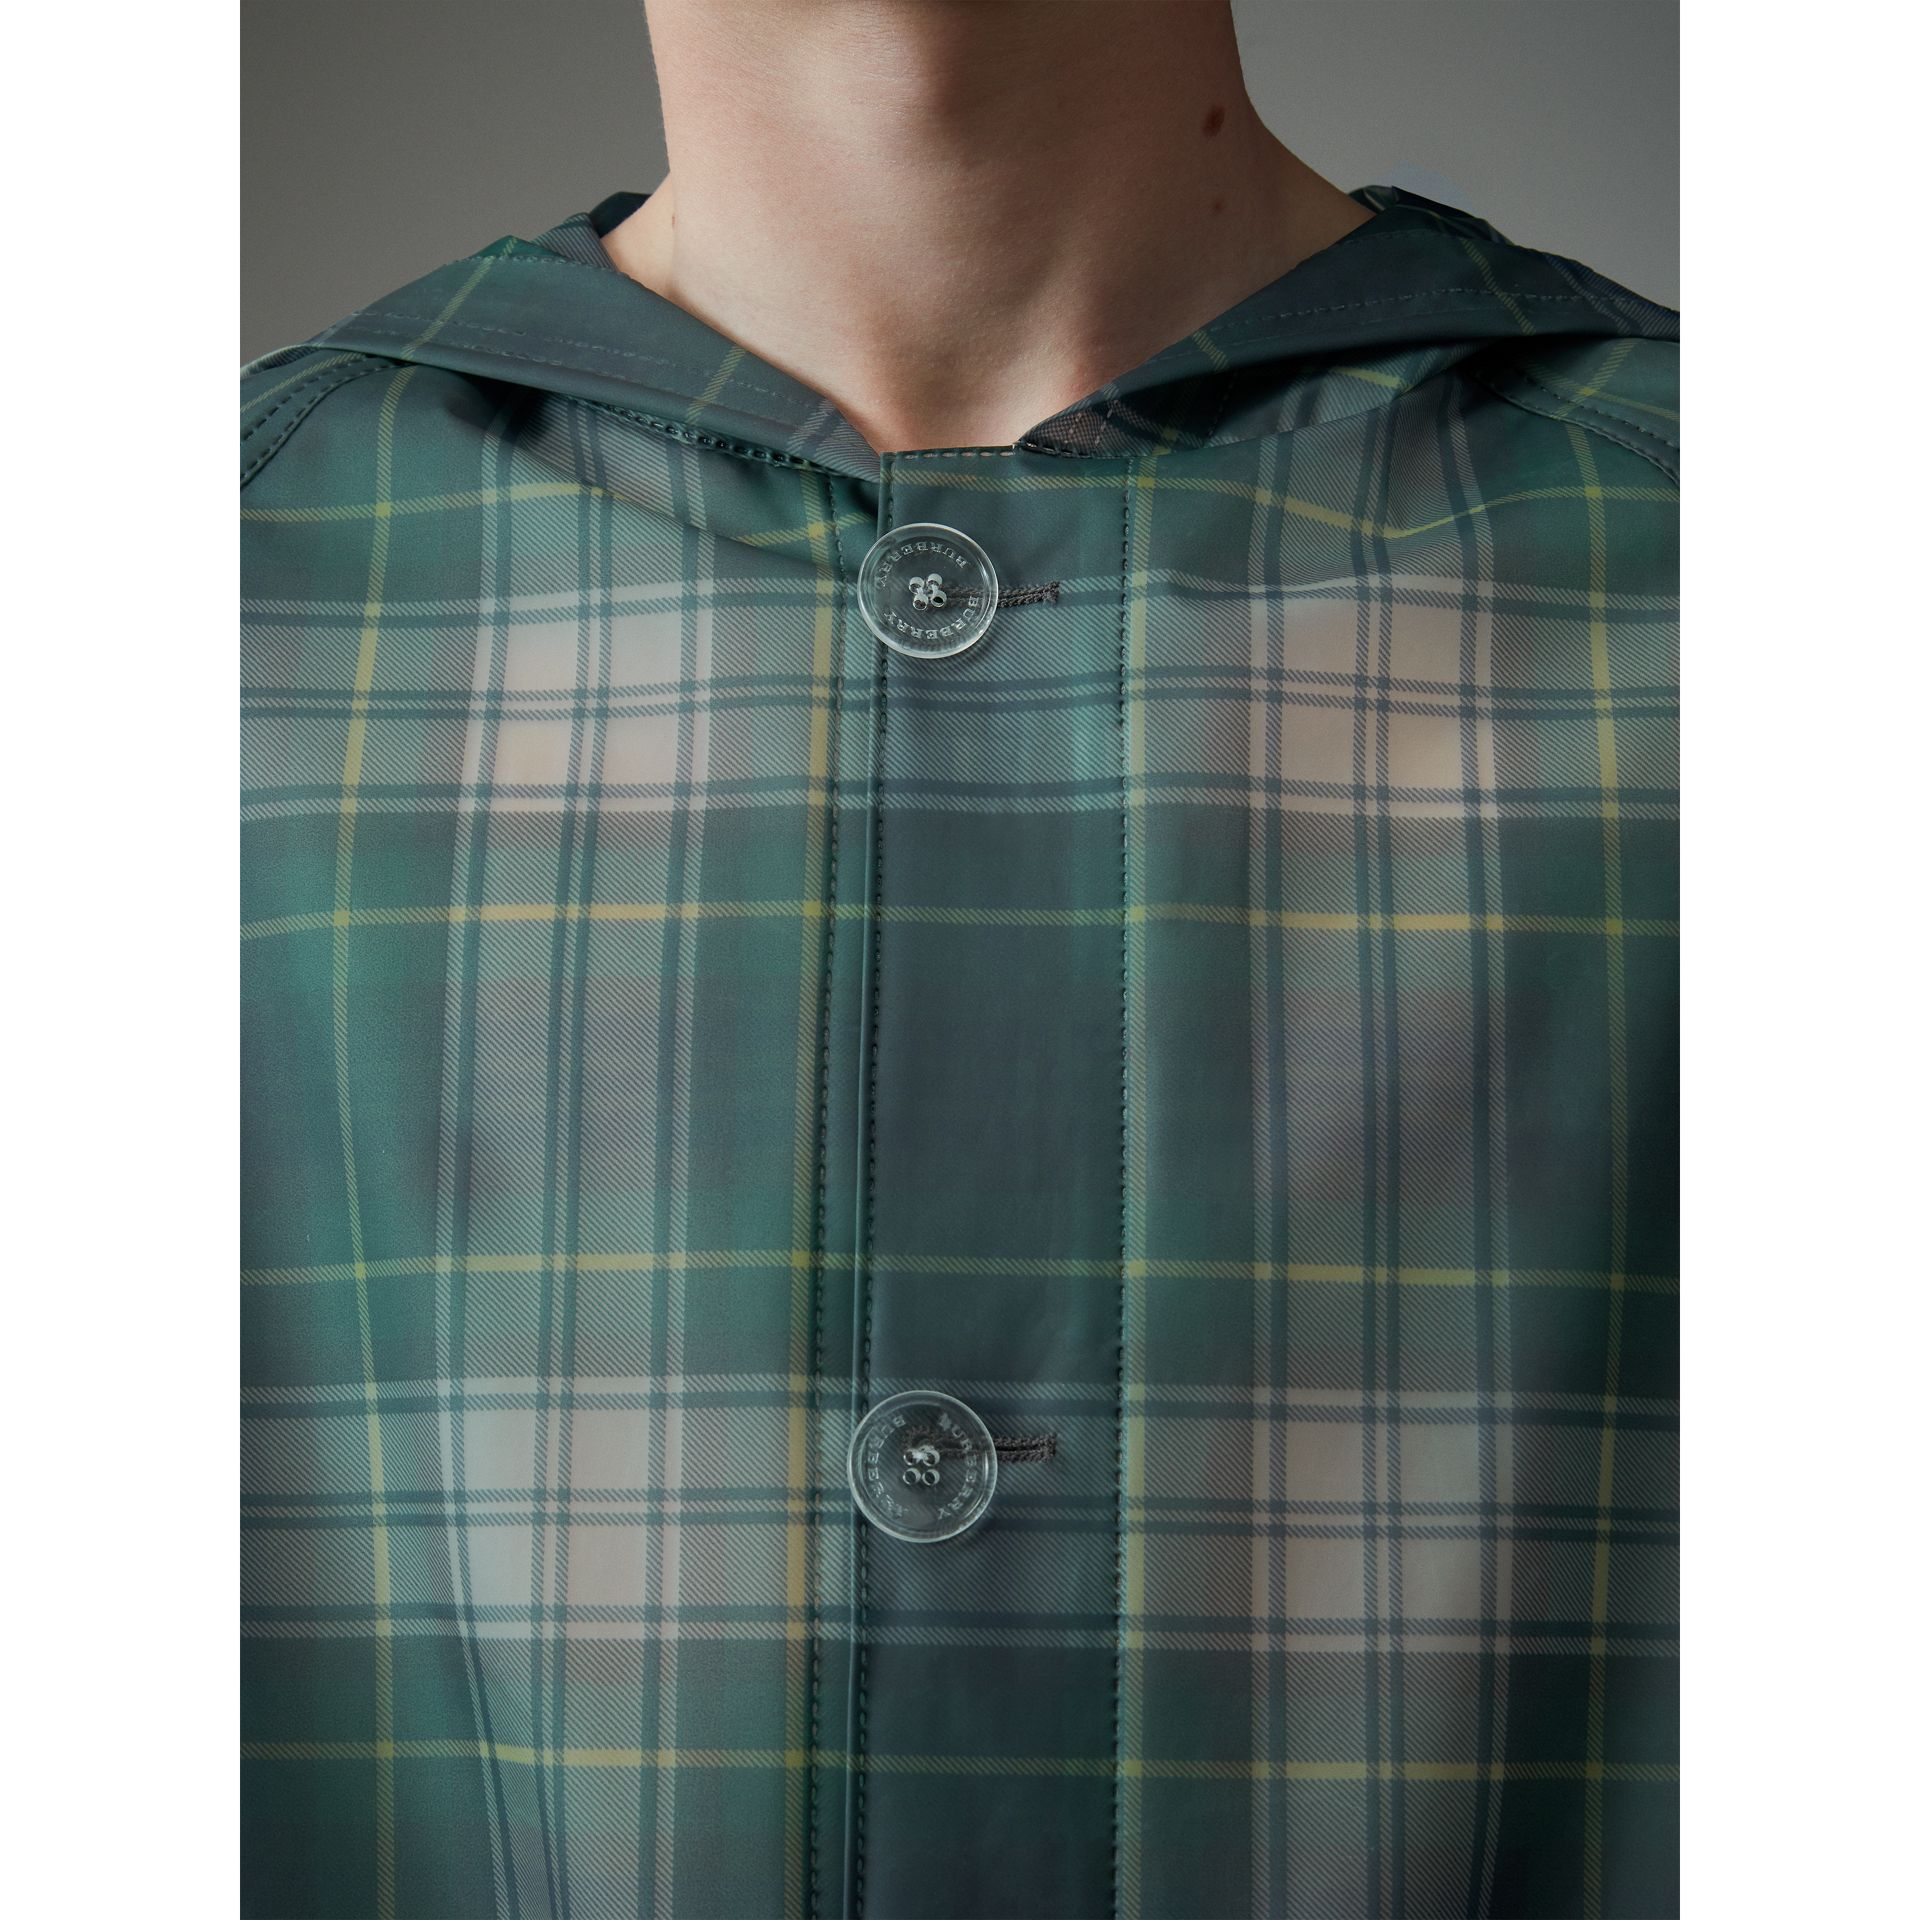 Tartan Soft-touch Plastic Hooded Car Coat in Navy - Men | Burberry United States - gallery image 4